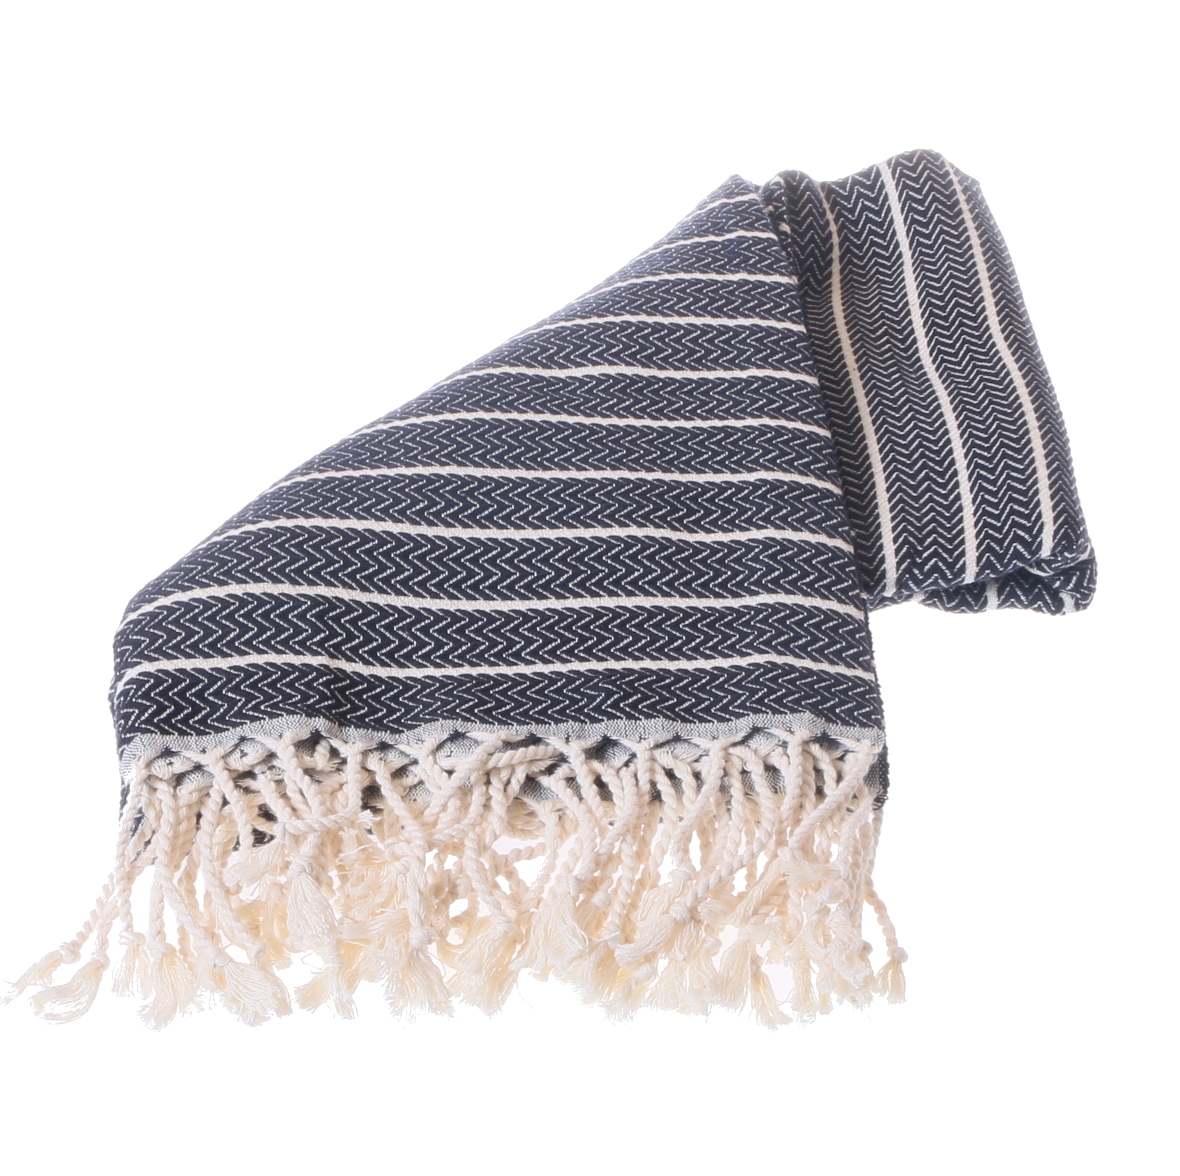 towel with black and white zigzag patter